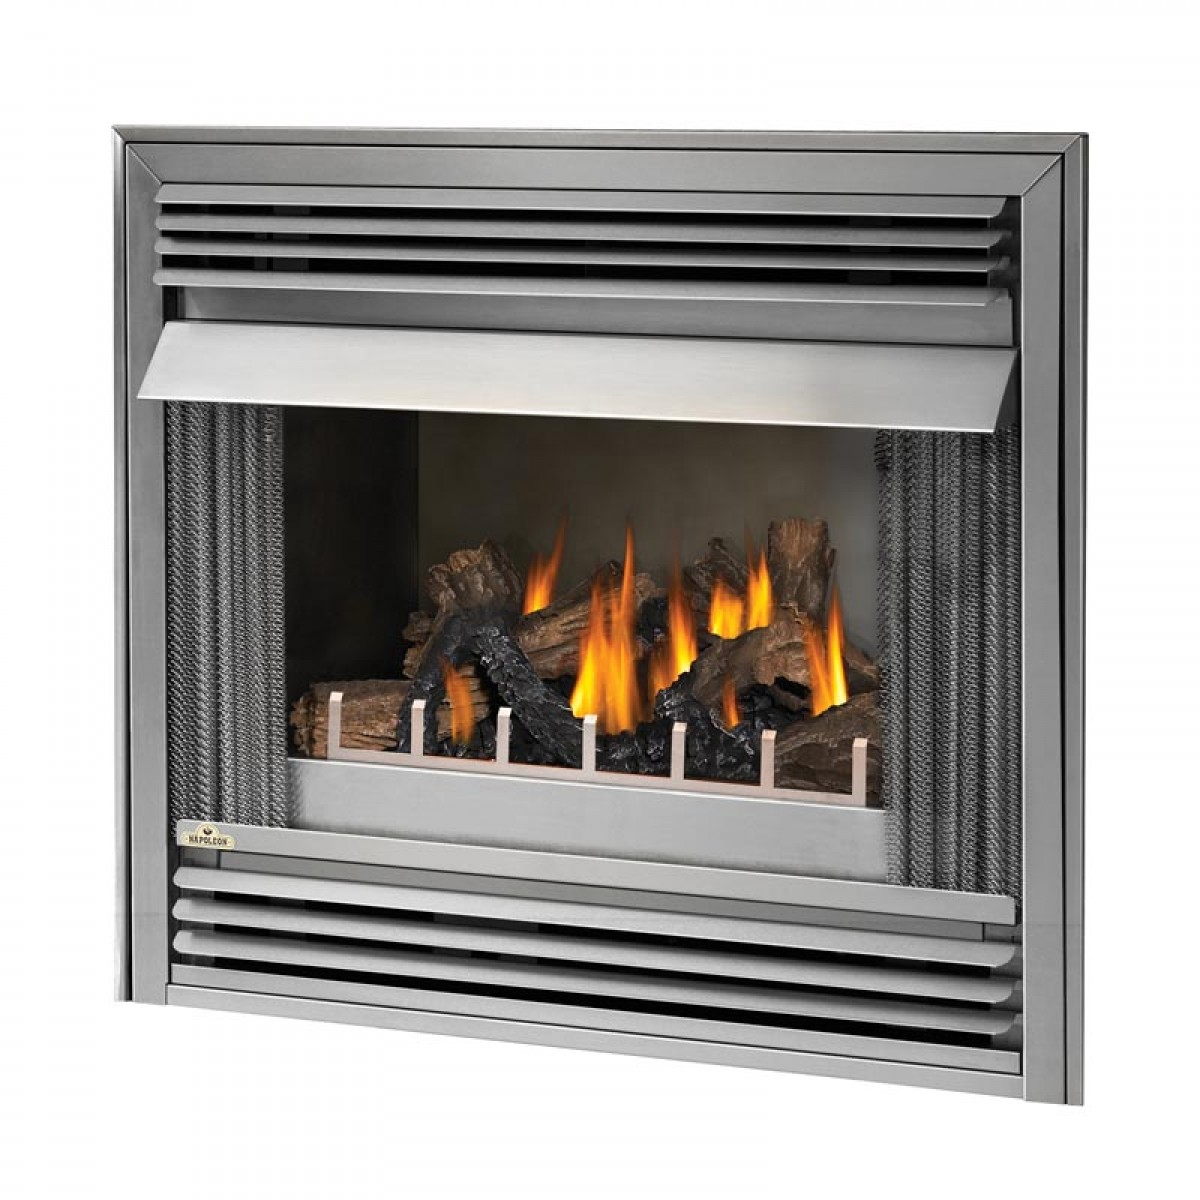 20 Ideas For Natural Gas Fireplace Inserts